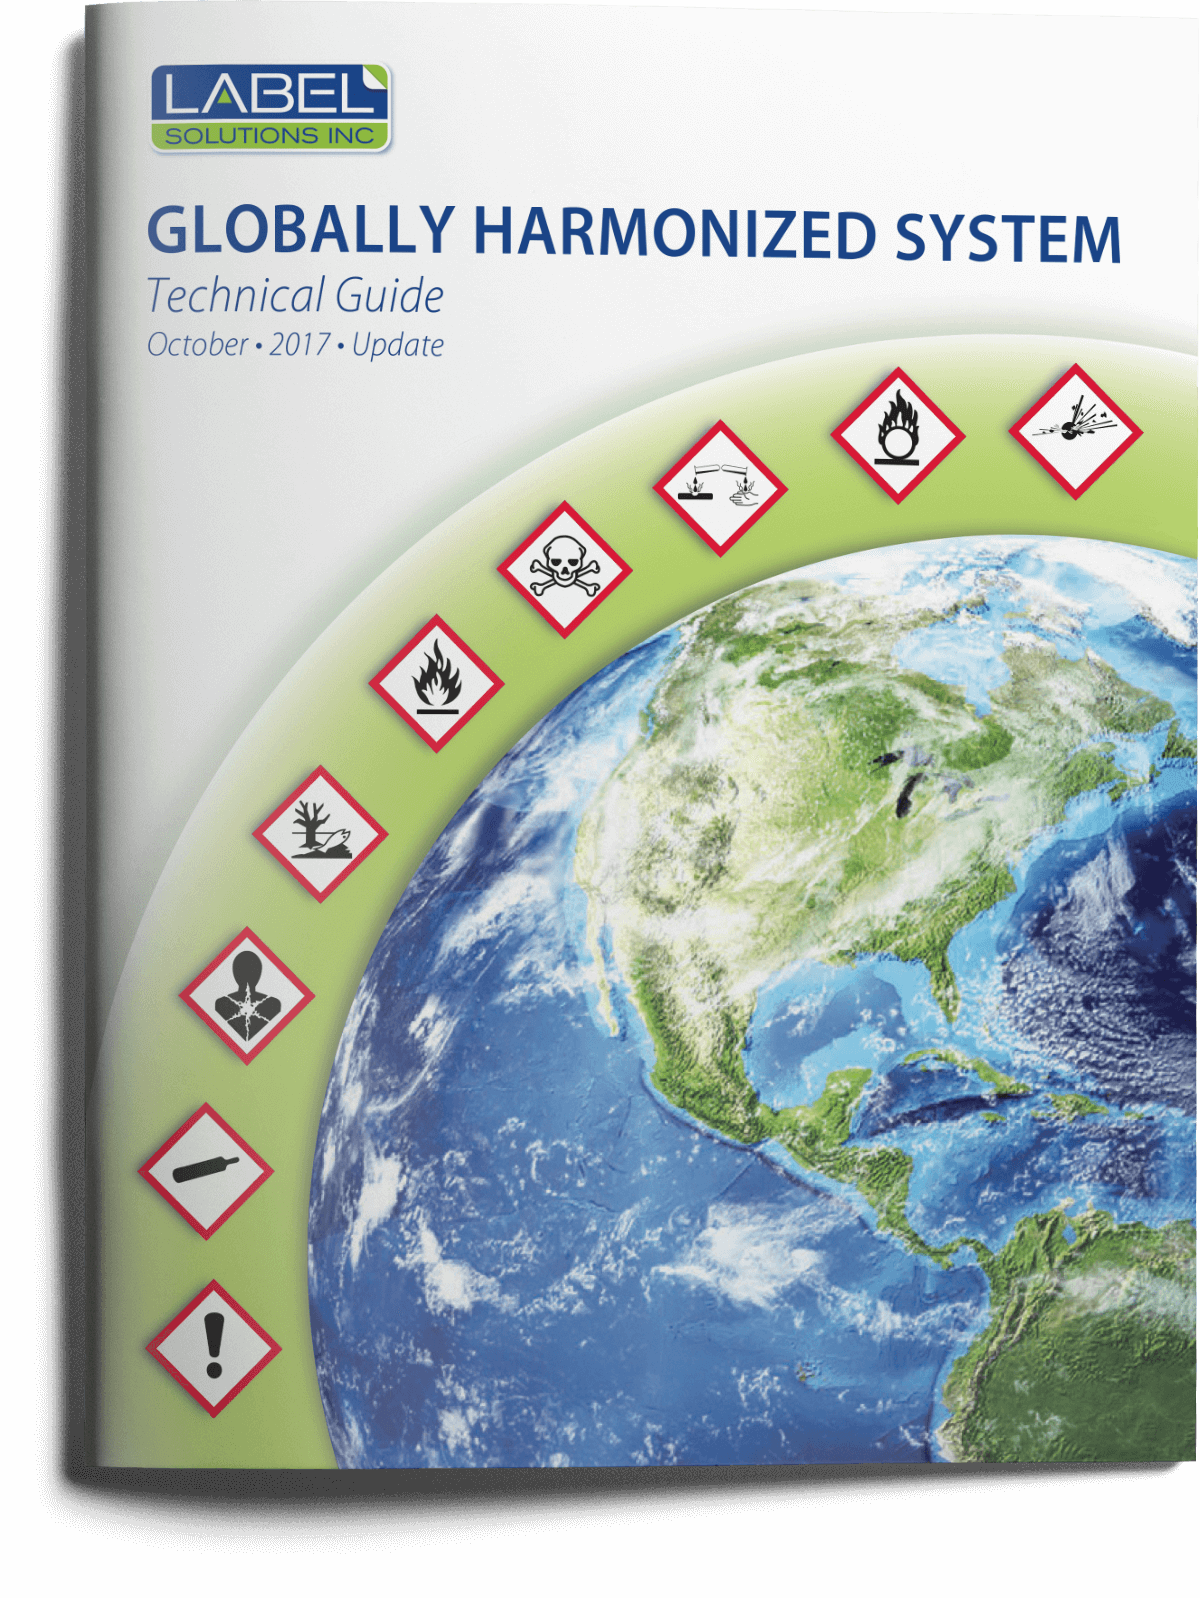 Globally Harmonized System Technical Guide